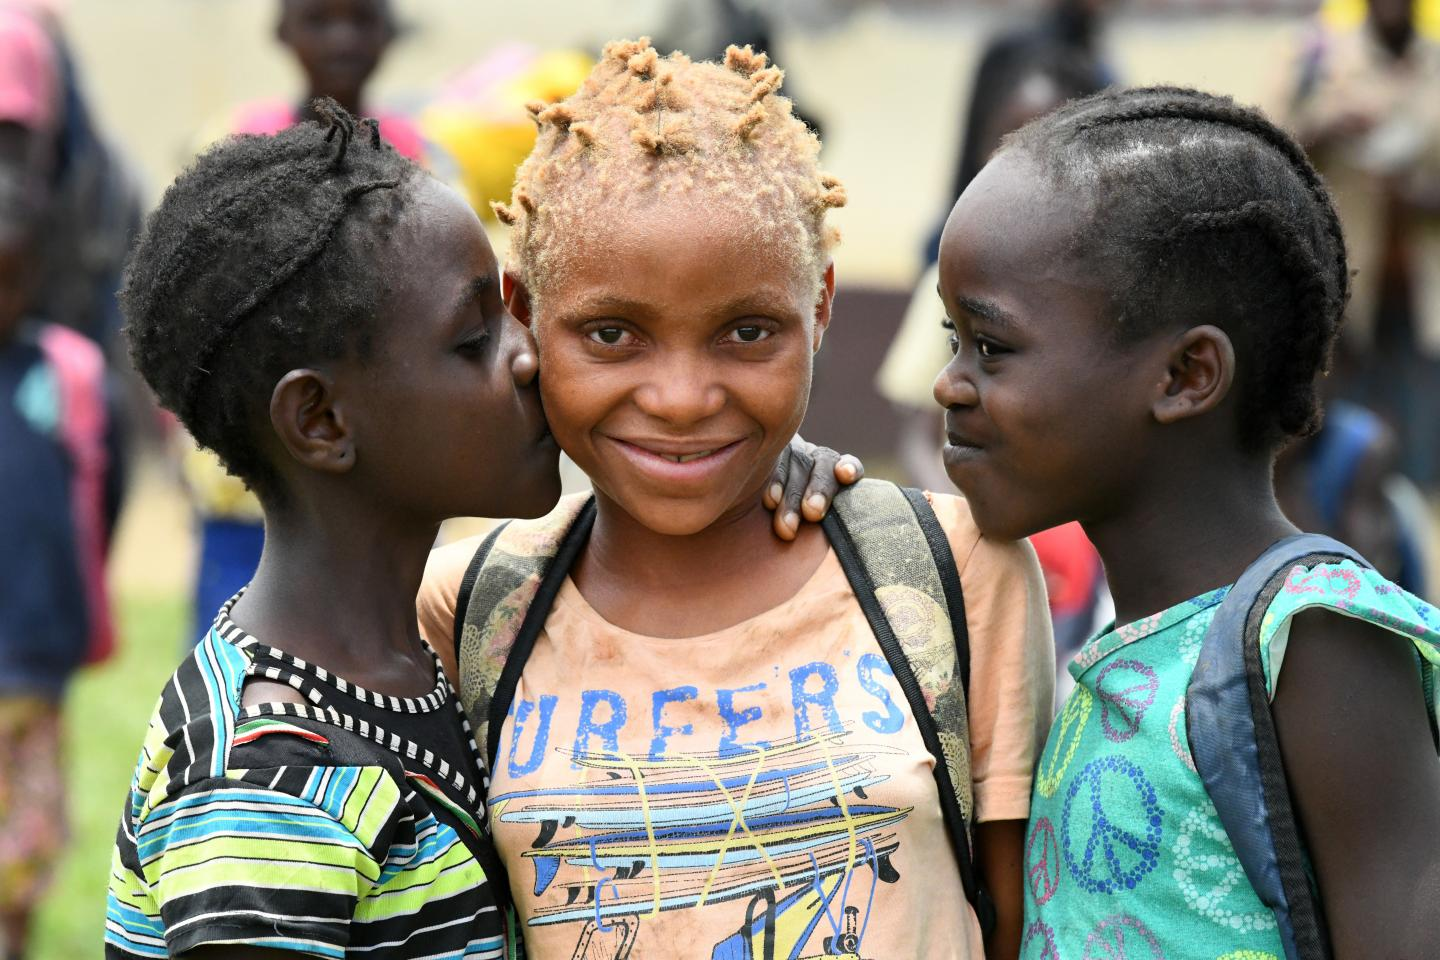 Convention on the Rights of the Child. Three girls stand together in Congo.